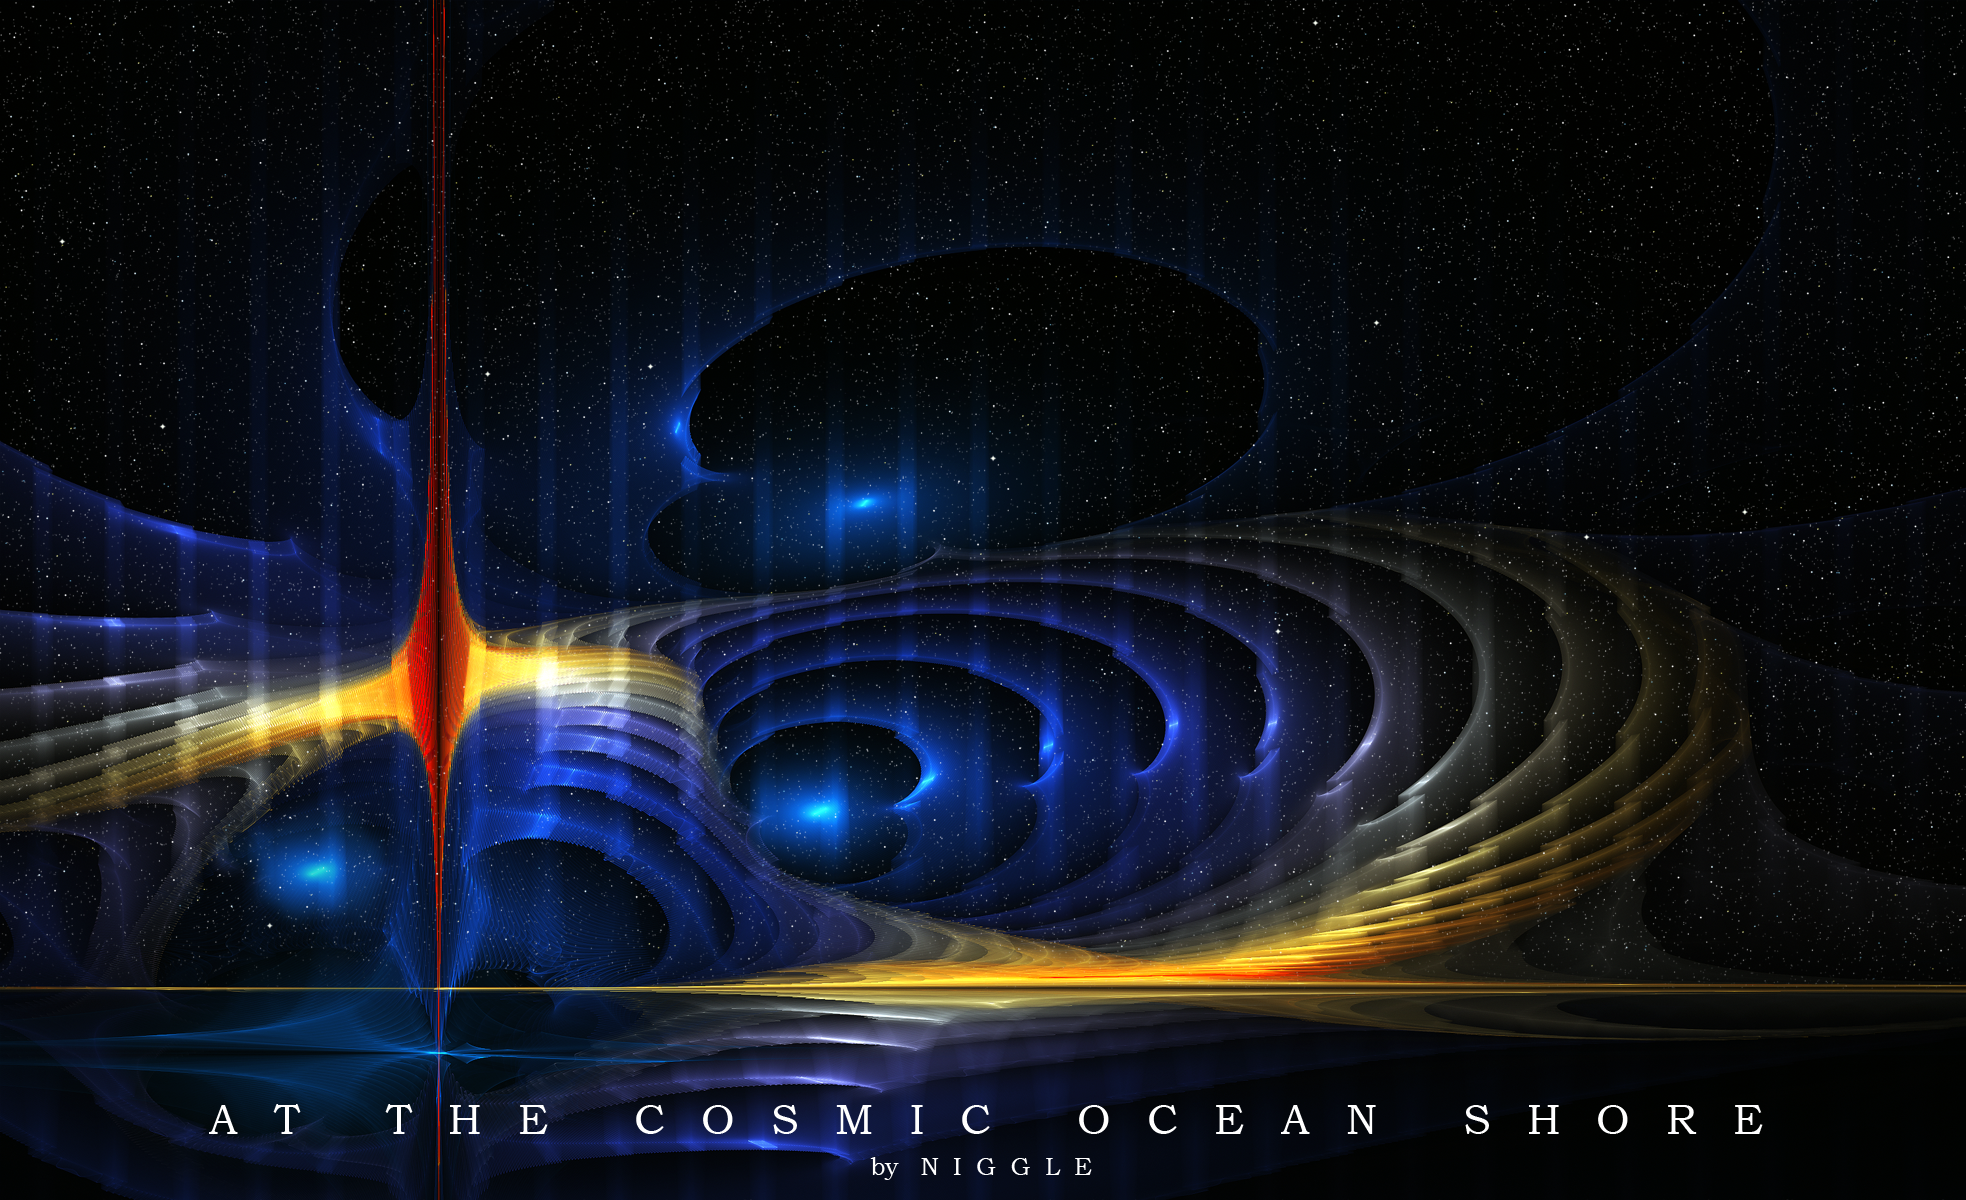 At the cosmic ocean shore. by Ni66le